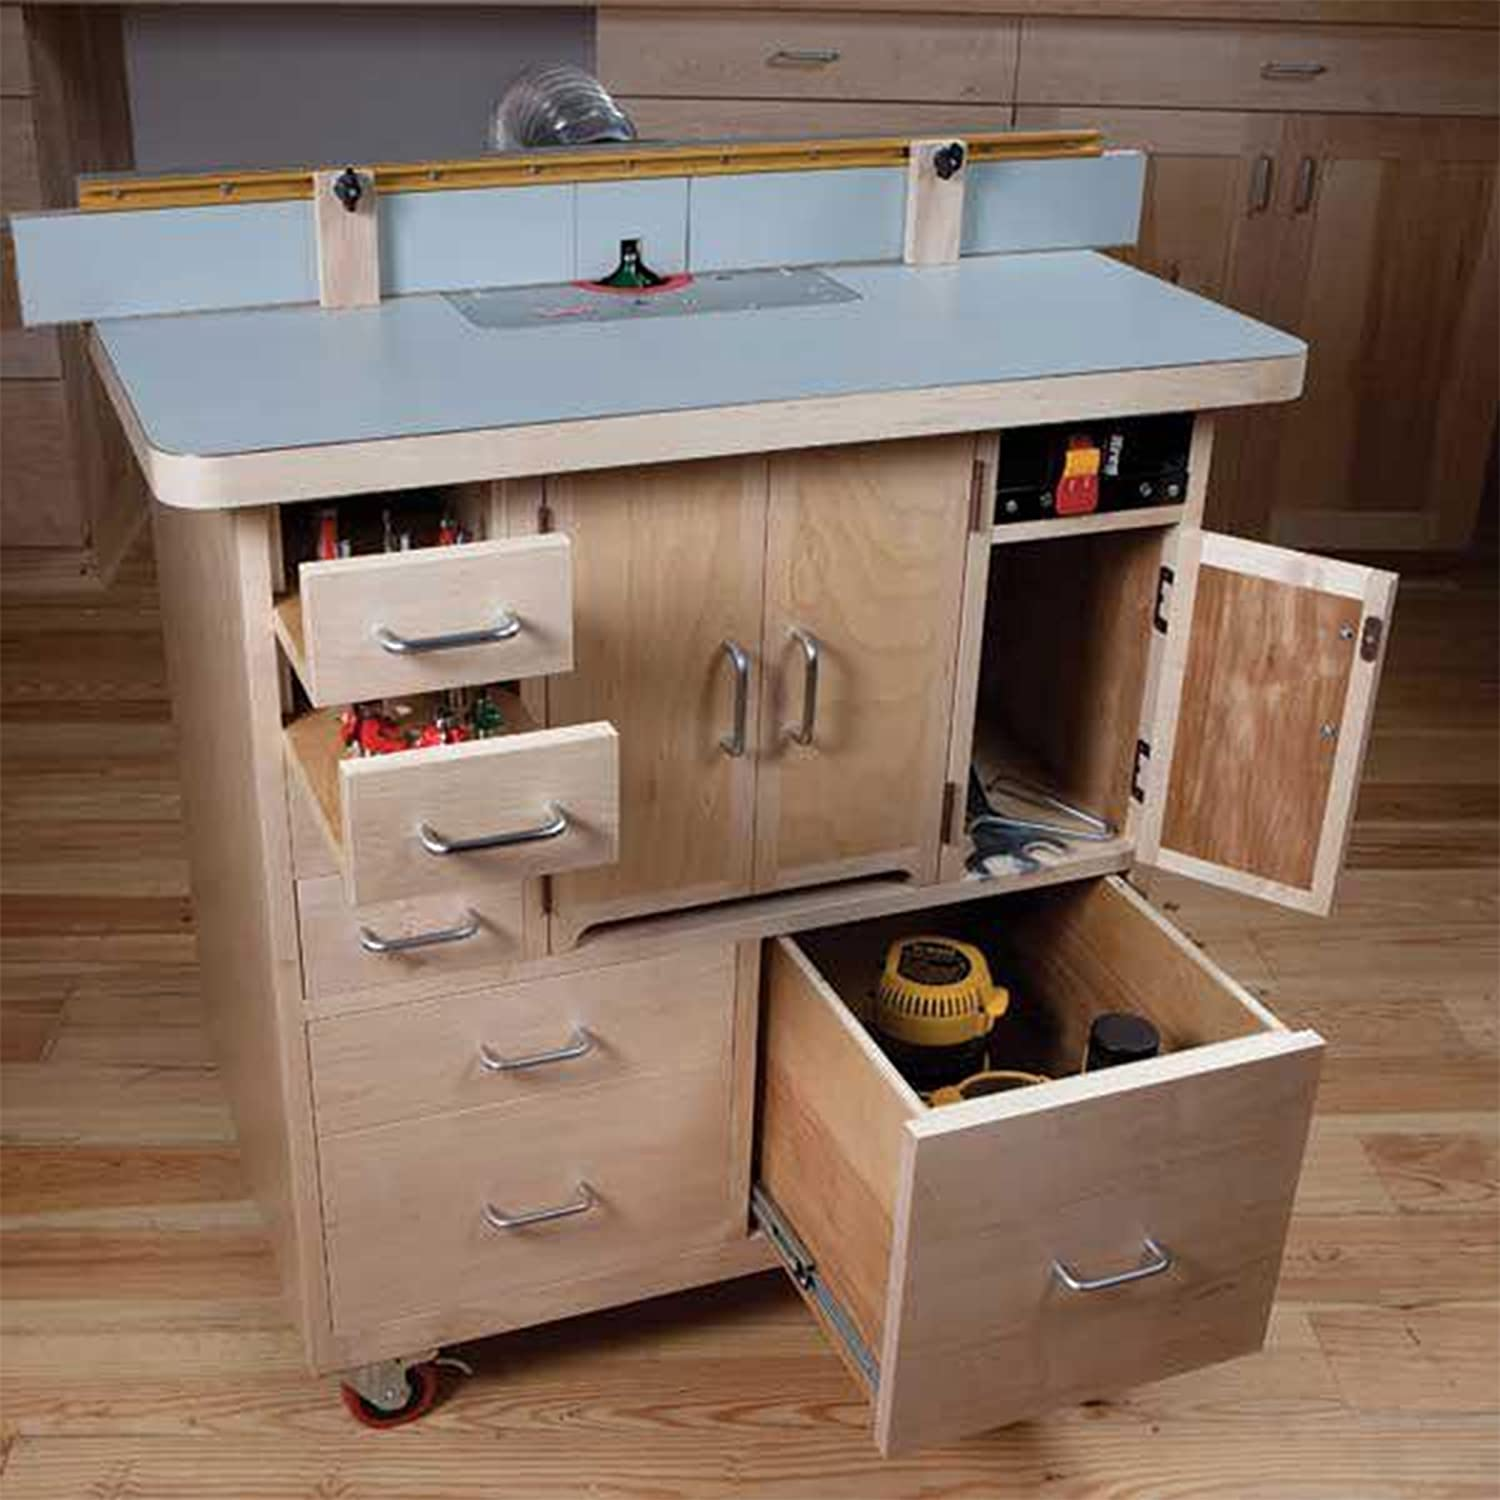 Woodworking Project Direct stock discount Paper Plan Elegant Build to Router Table